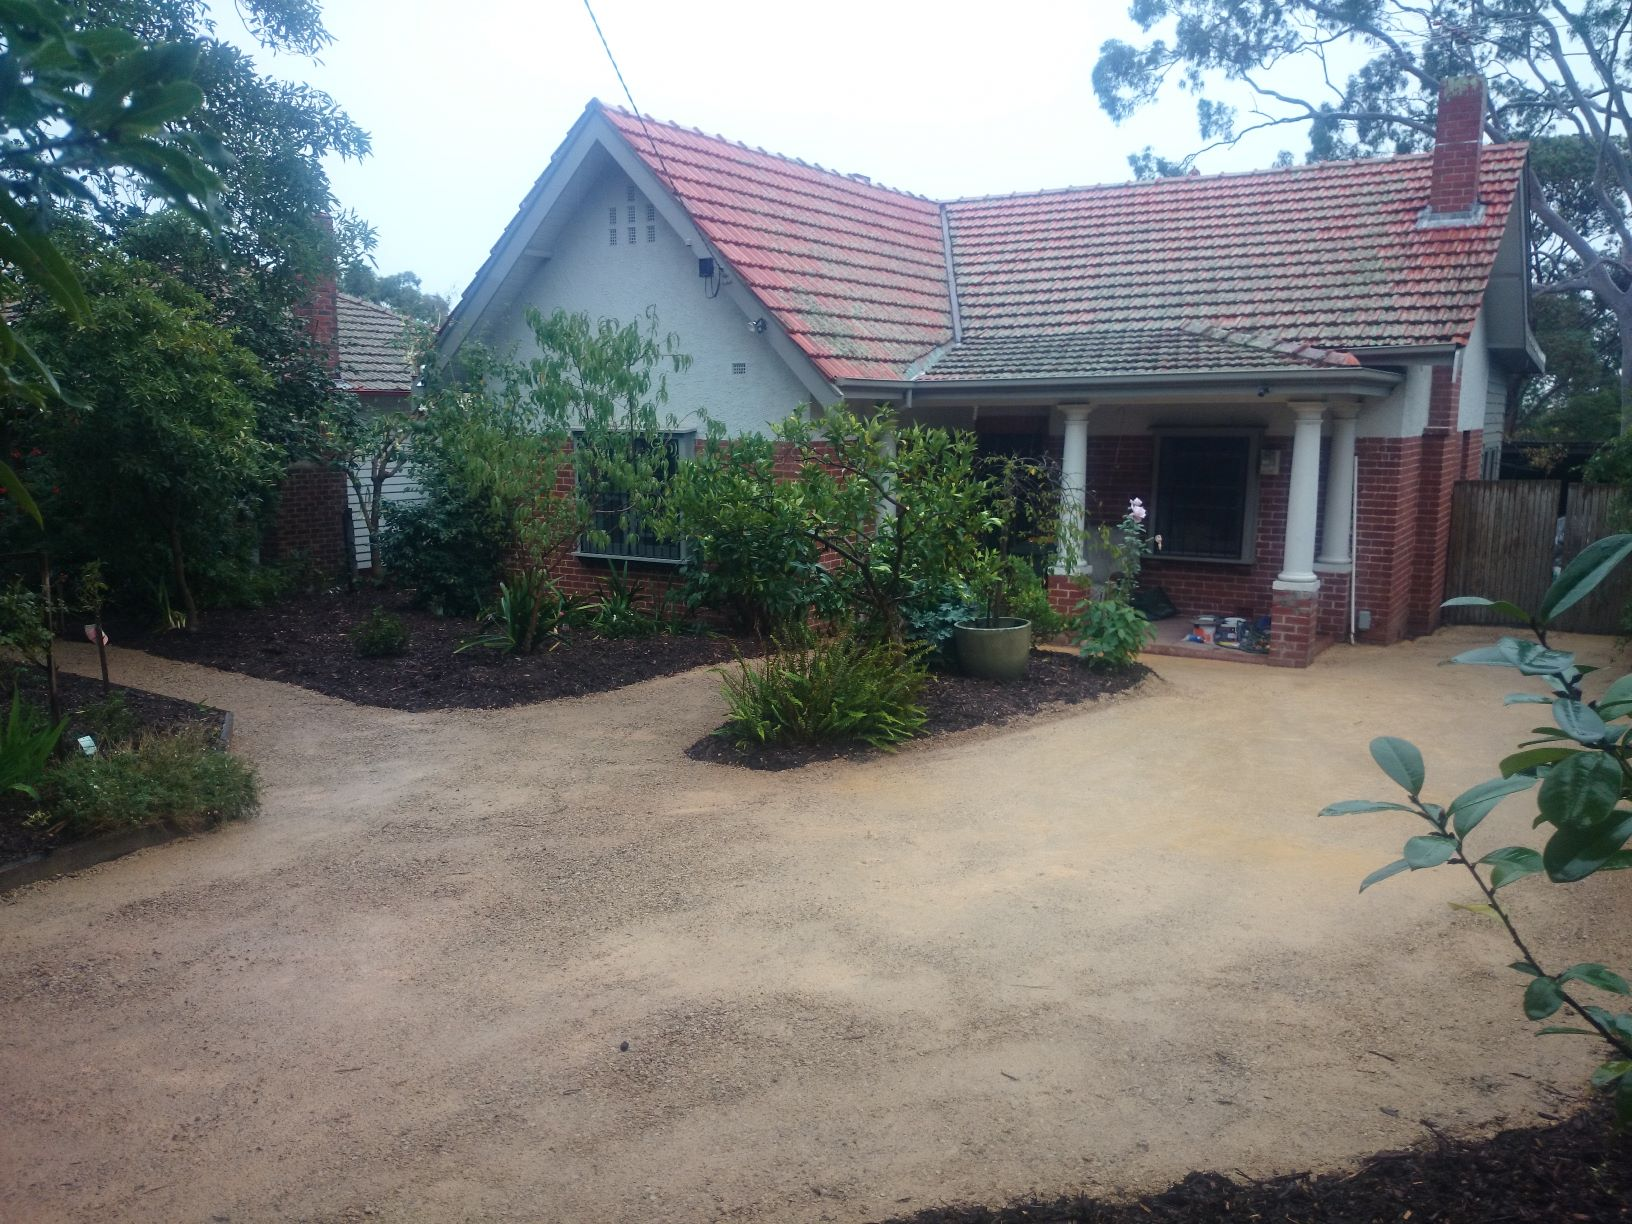 Surrey Hills extra parking, Driveway surfacing, compacted crushed sandstone driveways, 1.2 tonne Roller compactor